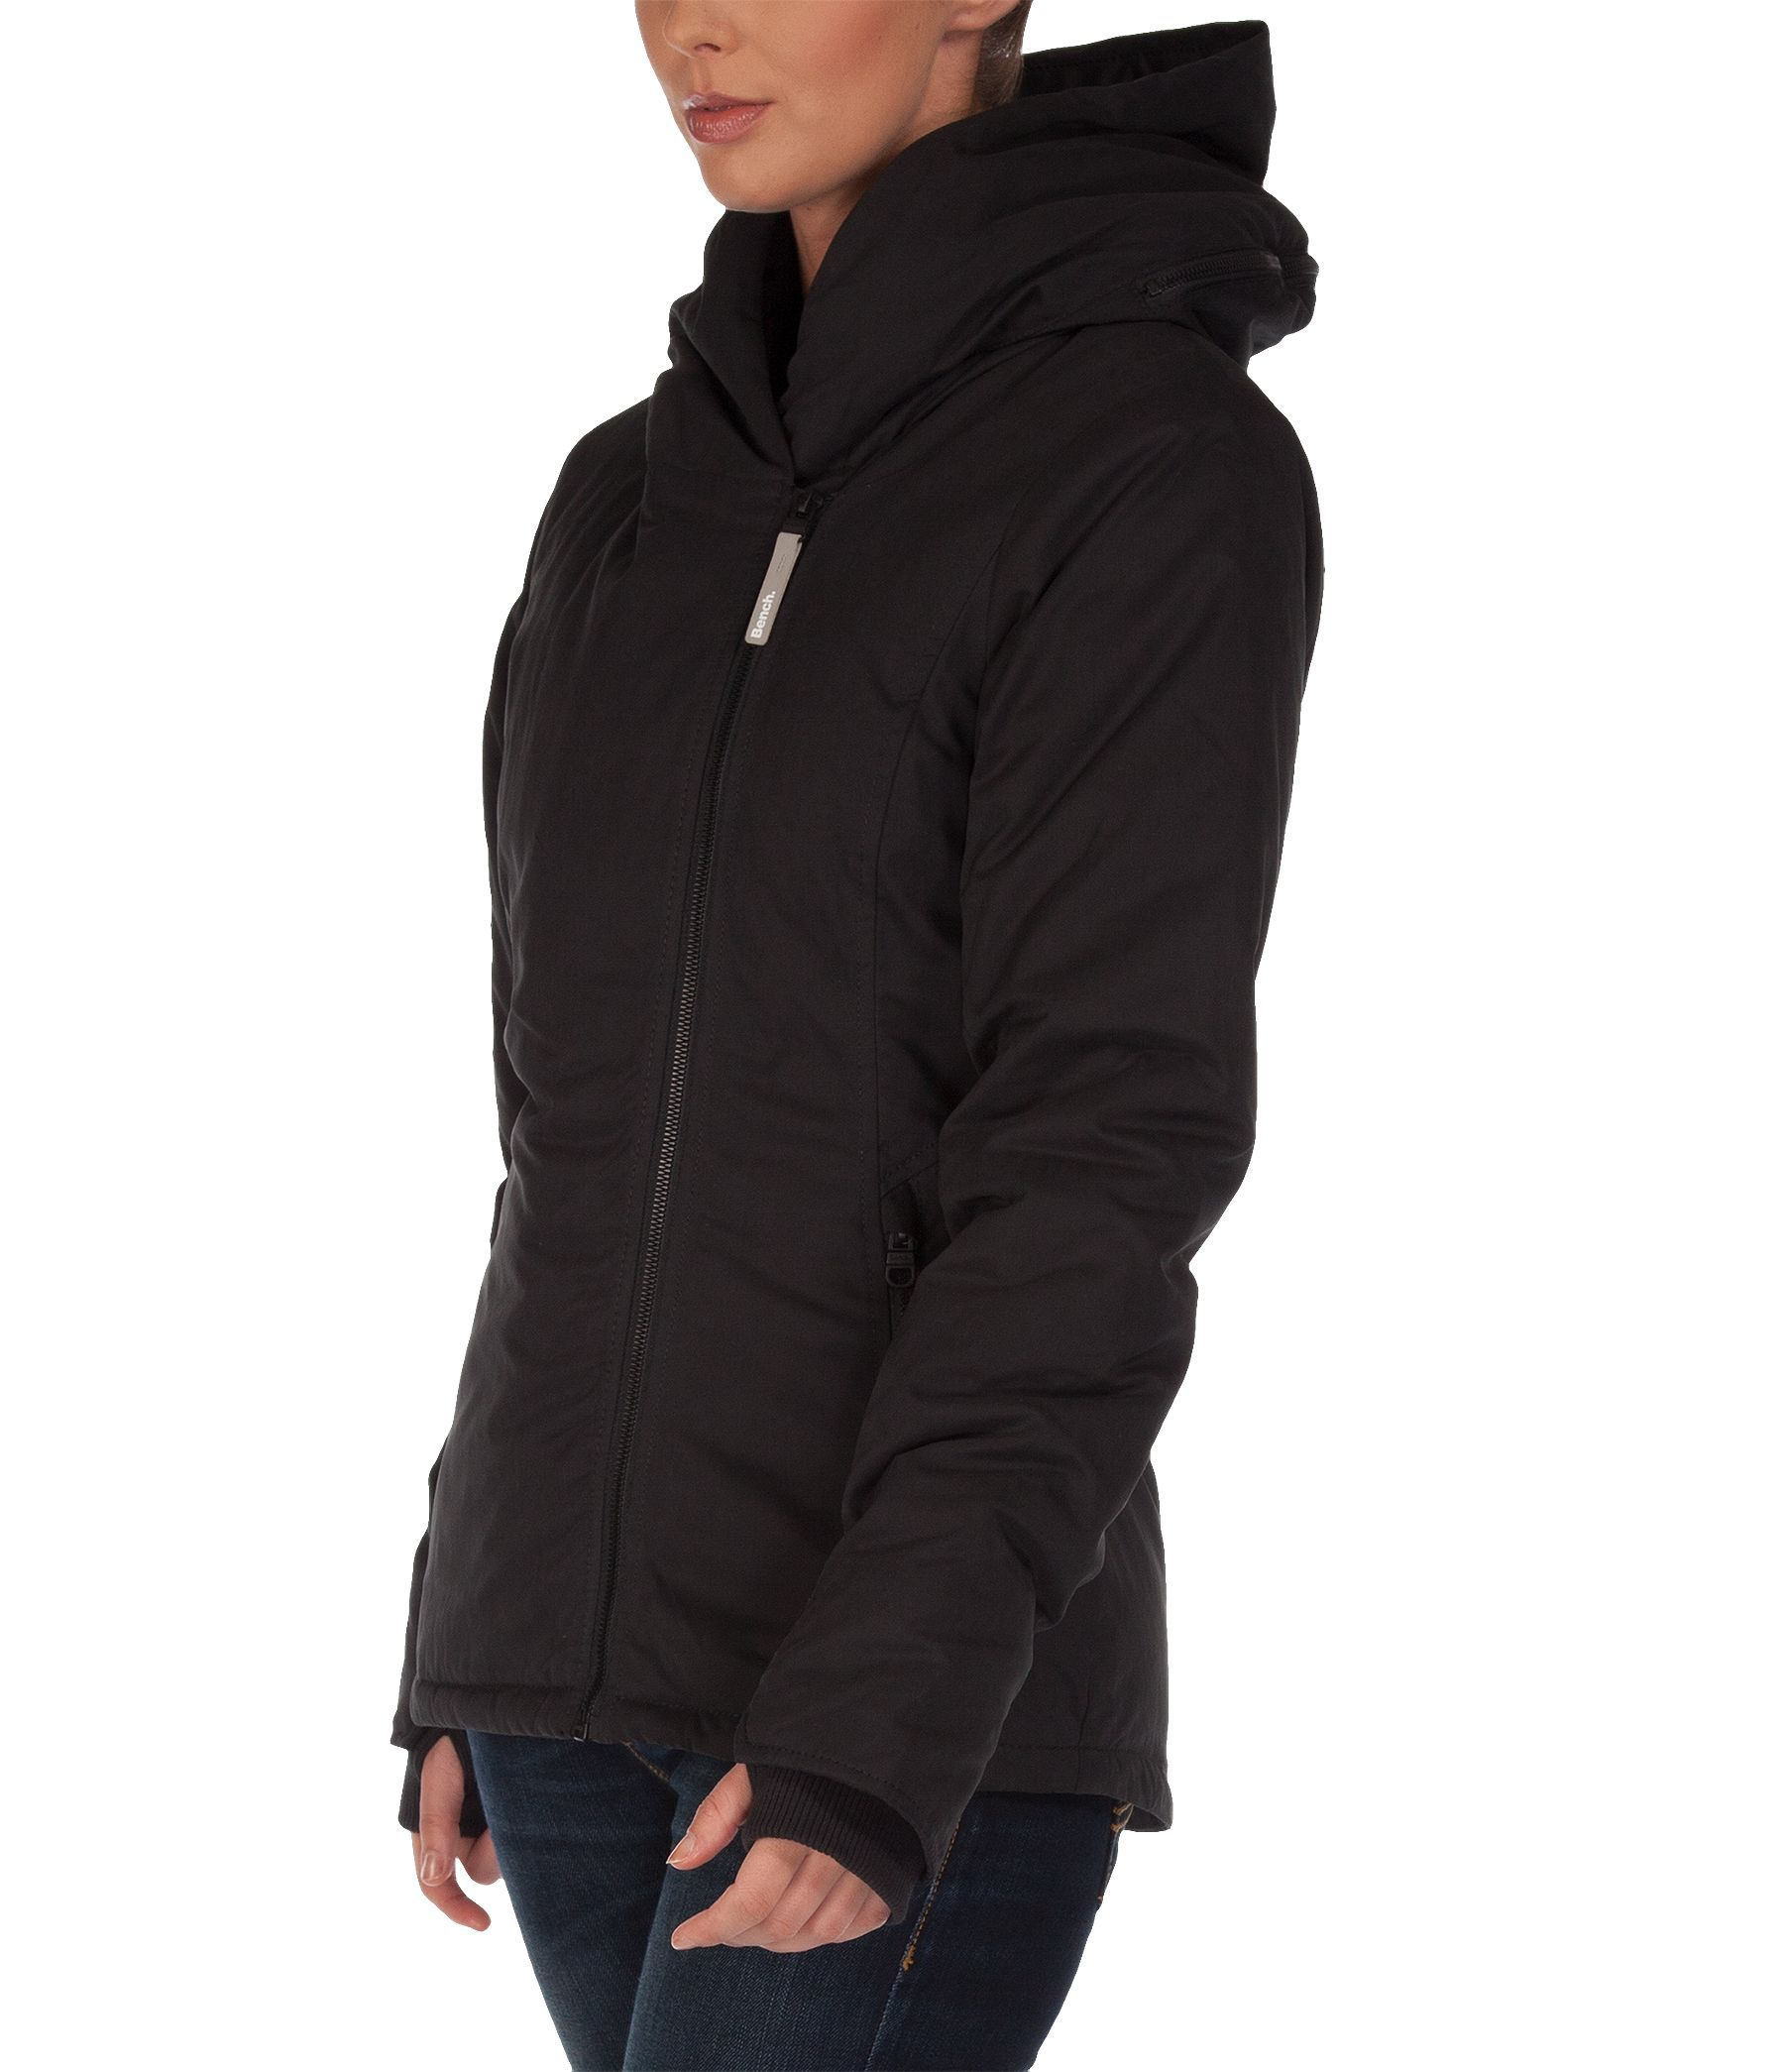 Bench bonspeil jacket in black lyst Bench jacket